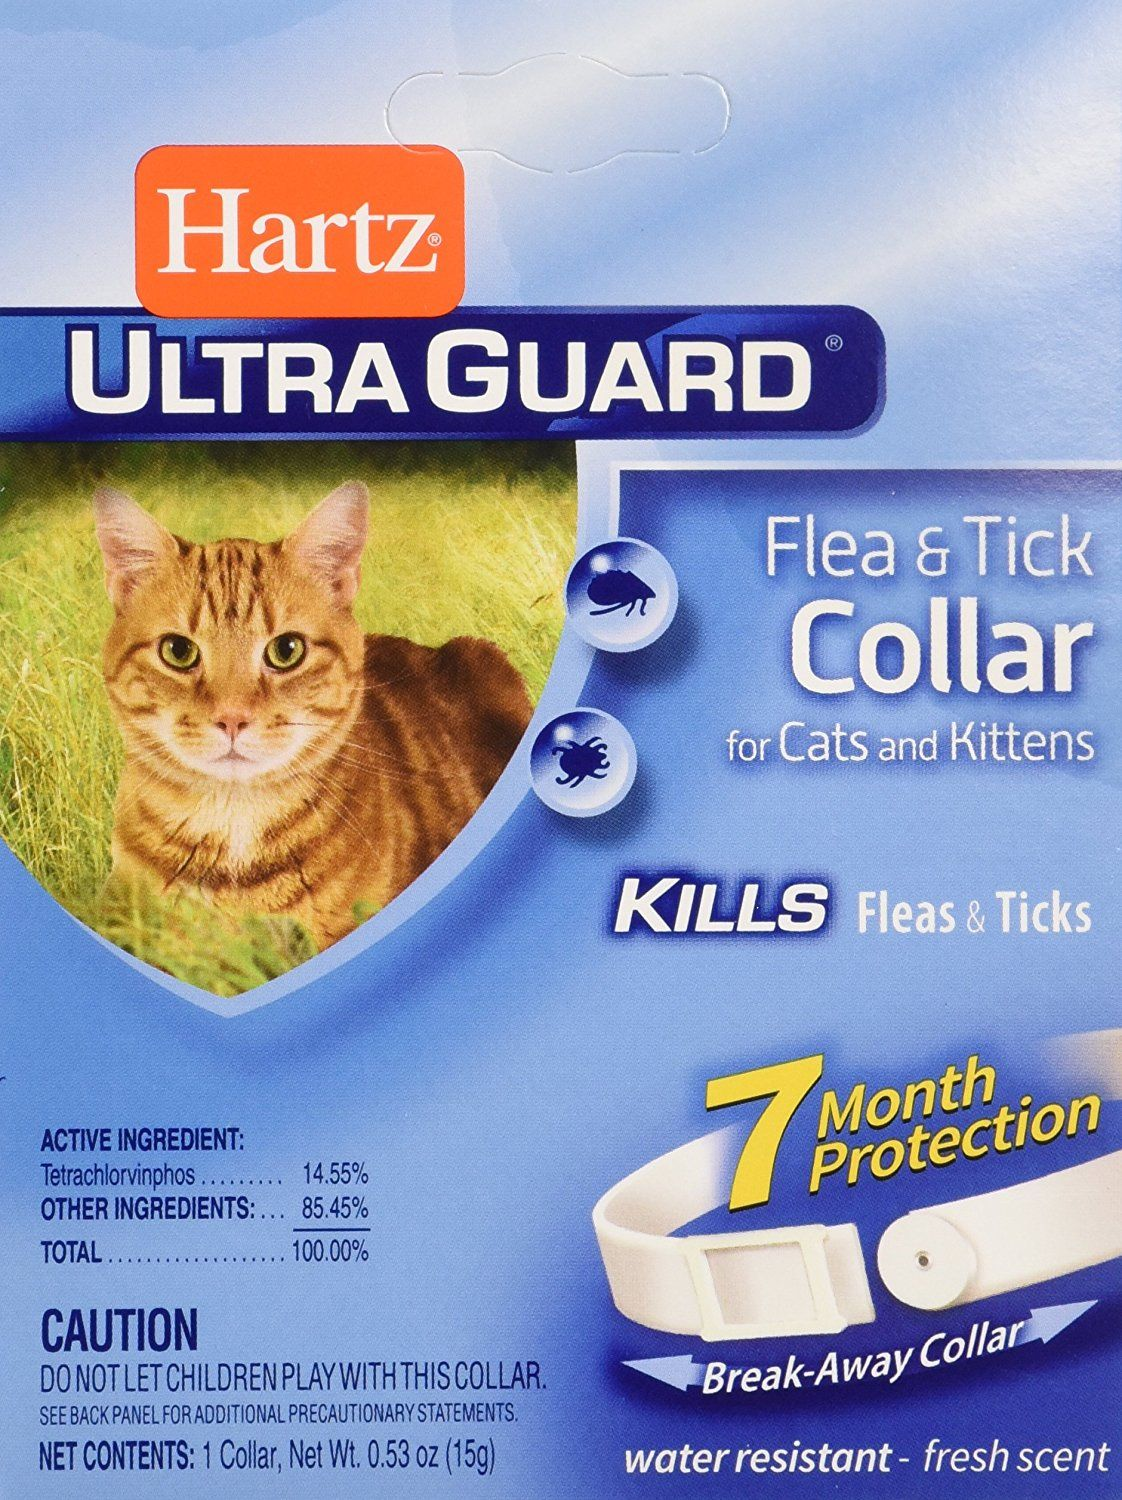 Ultraguard Plus Flea And Tick Kitten And Cat Collar Trust Me This Is Great Click The Image Cat Products Flea And Tick Kitten Collars Cat Fleas